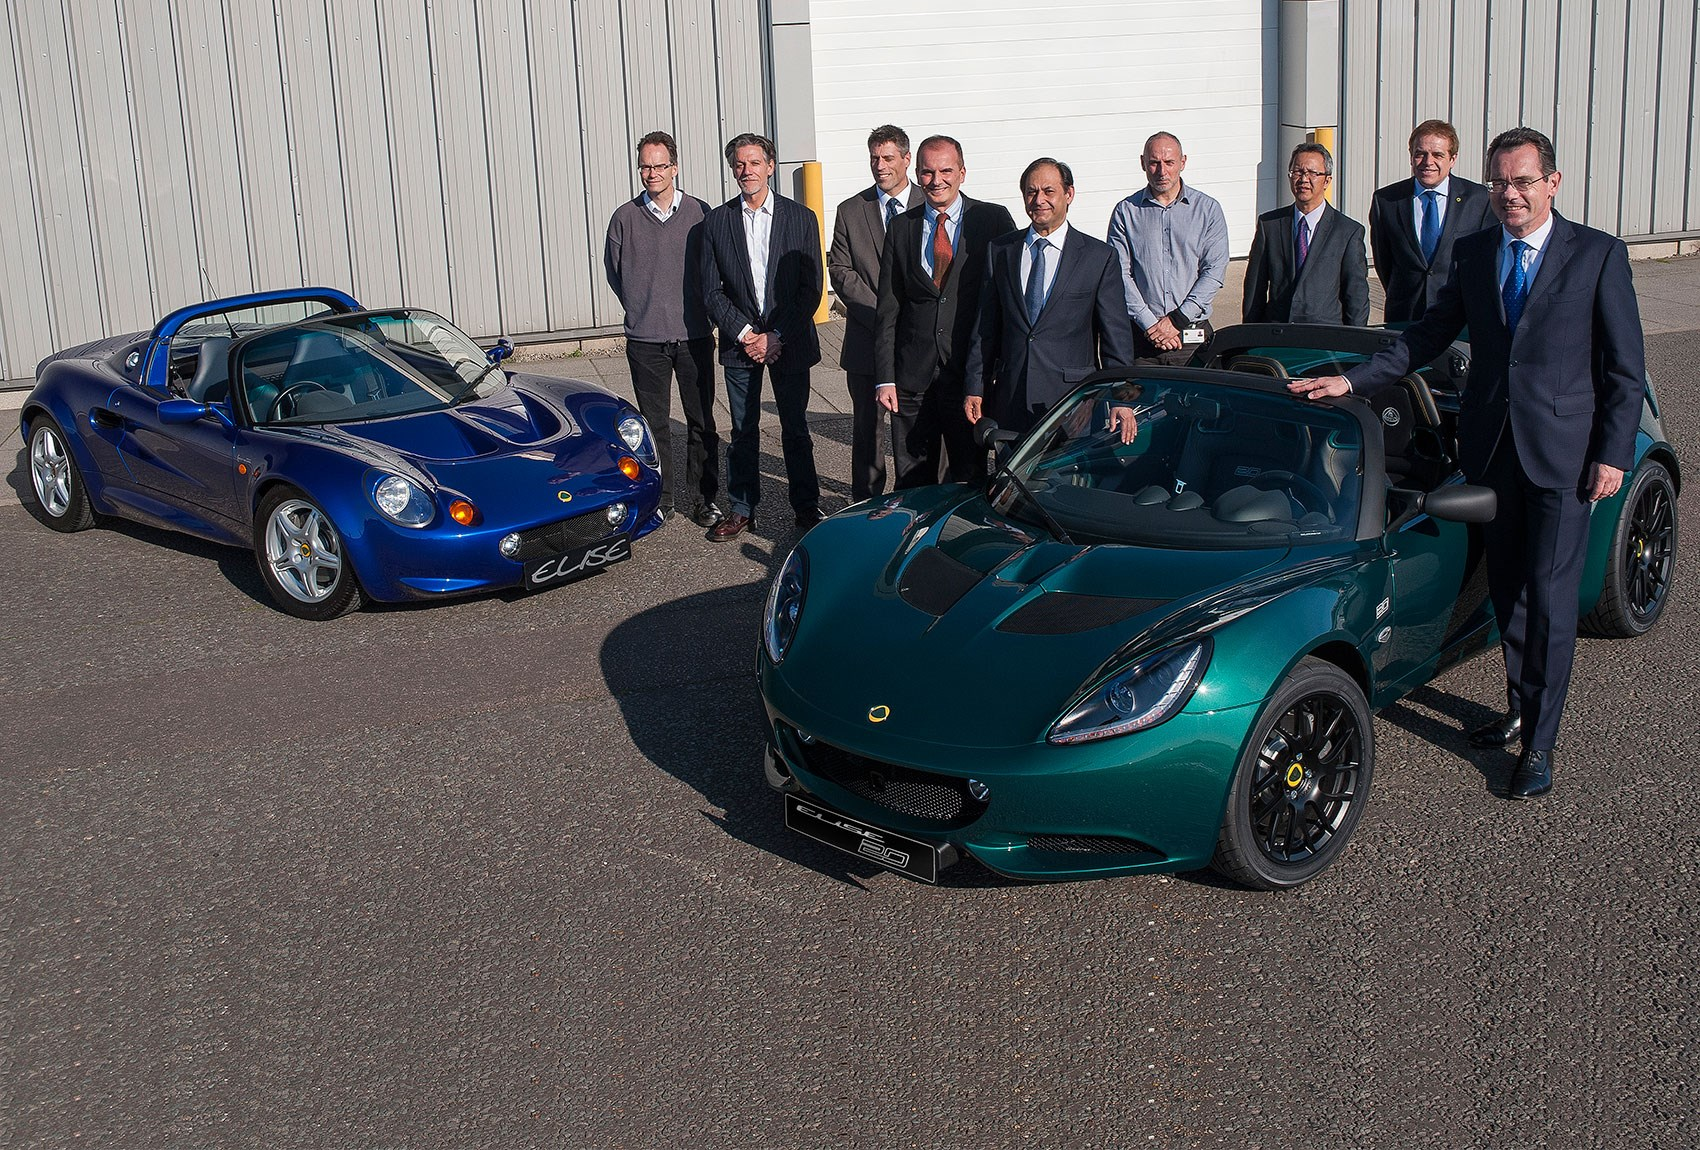 Lotus builds 40000 elise platformed cars by car magazine the 40000th member of the lotus elise family vanachro Gallery